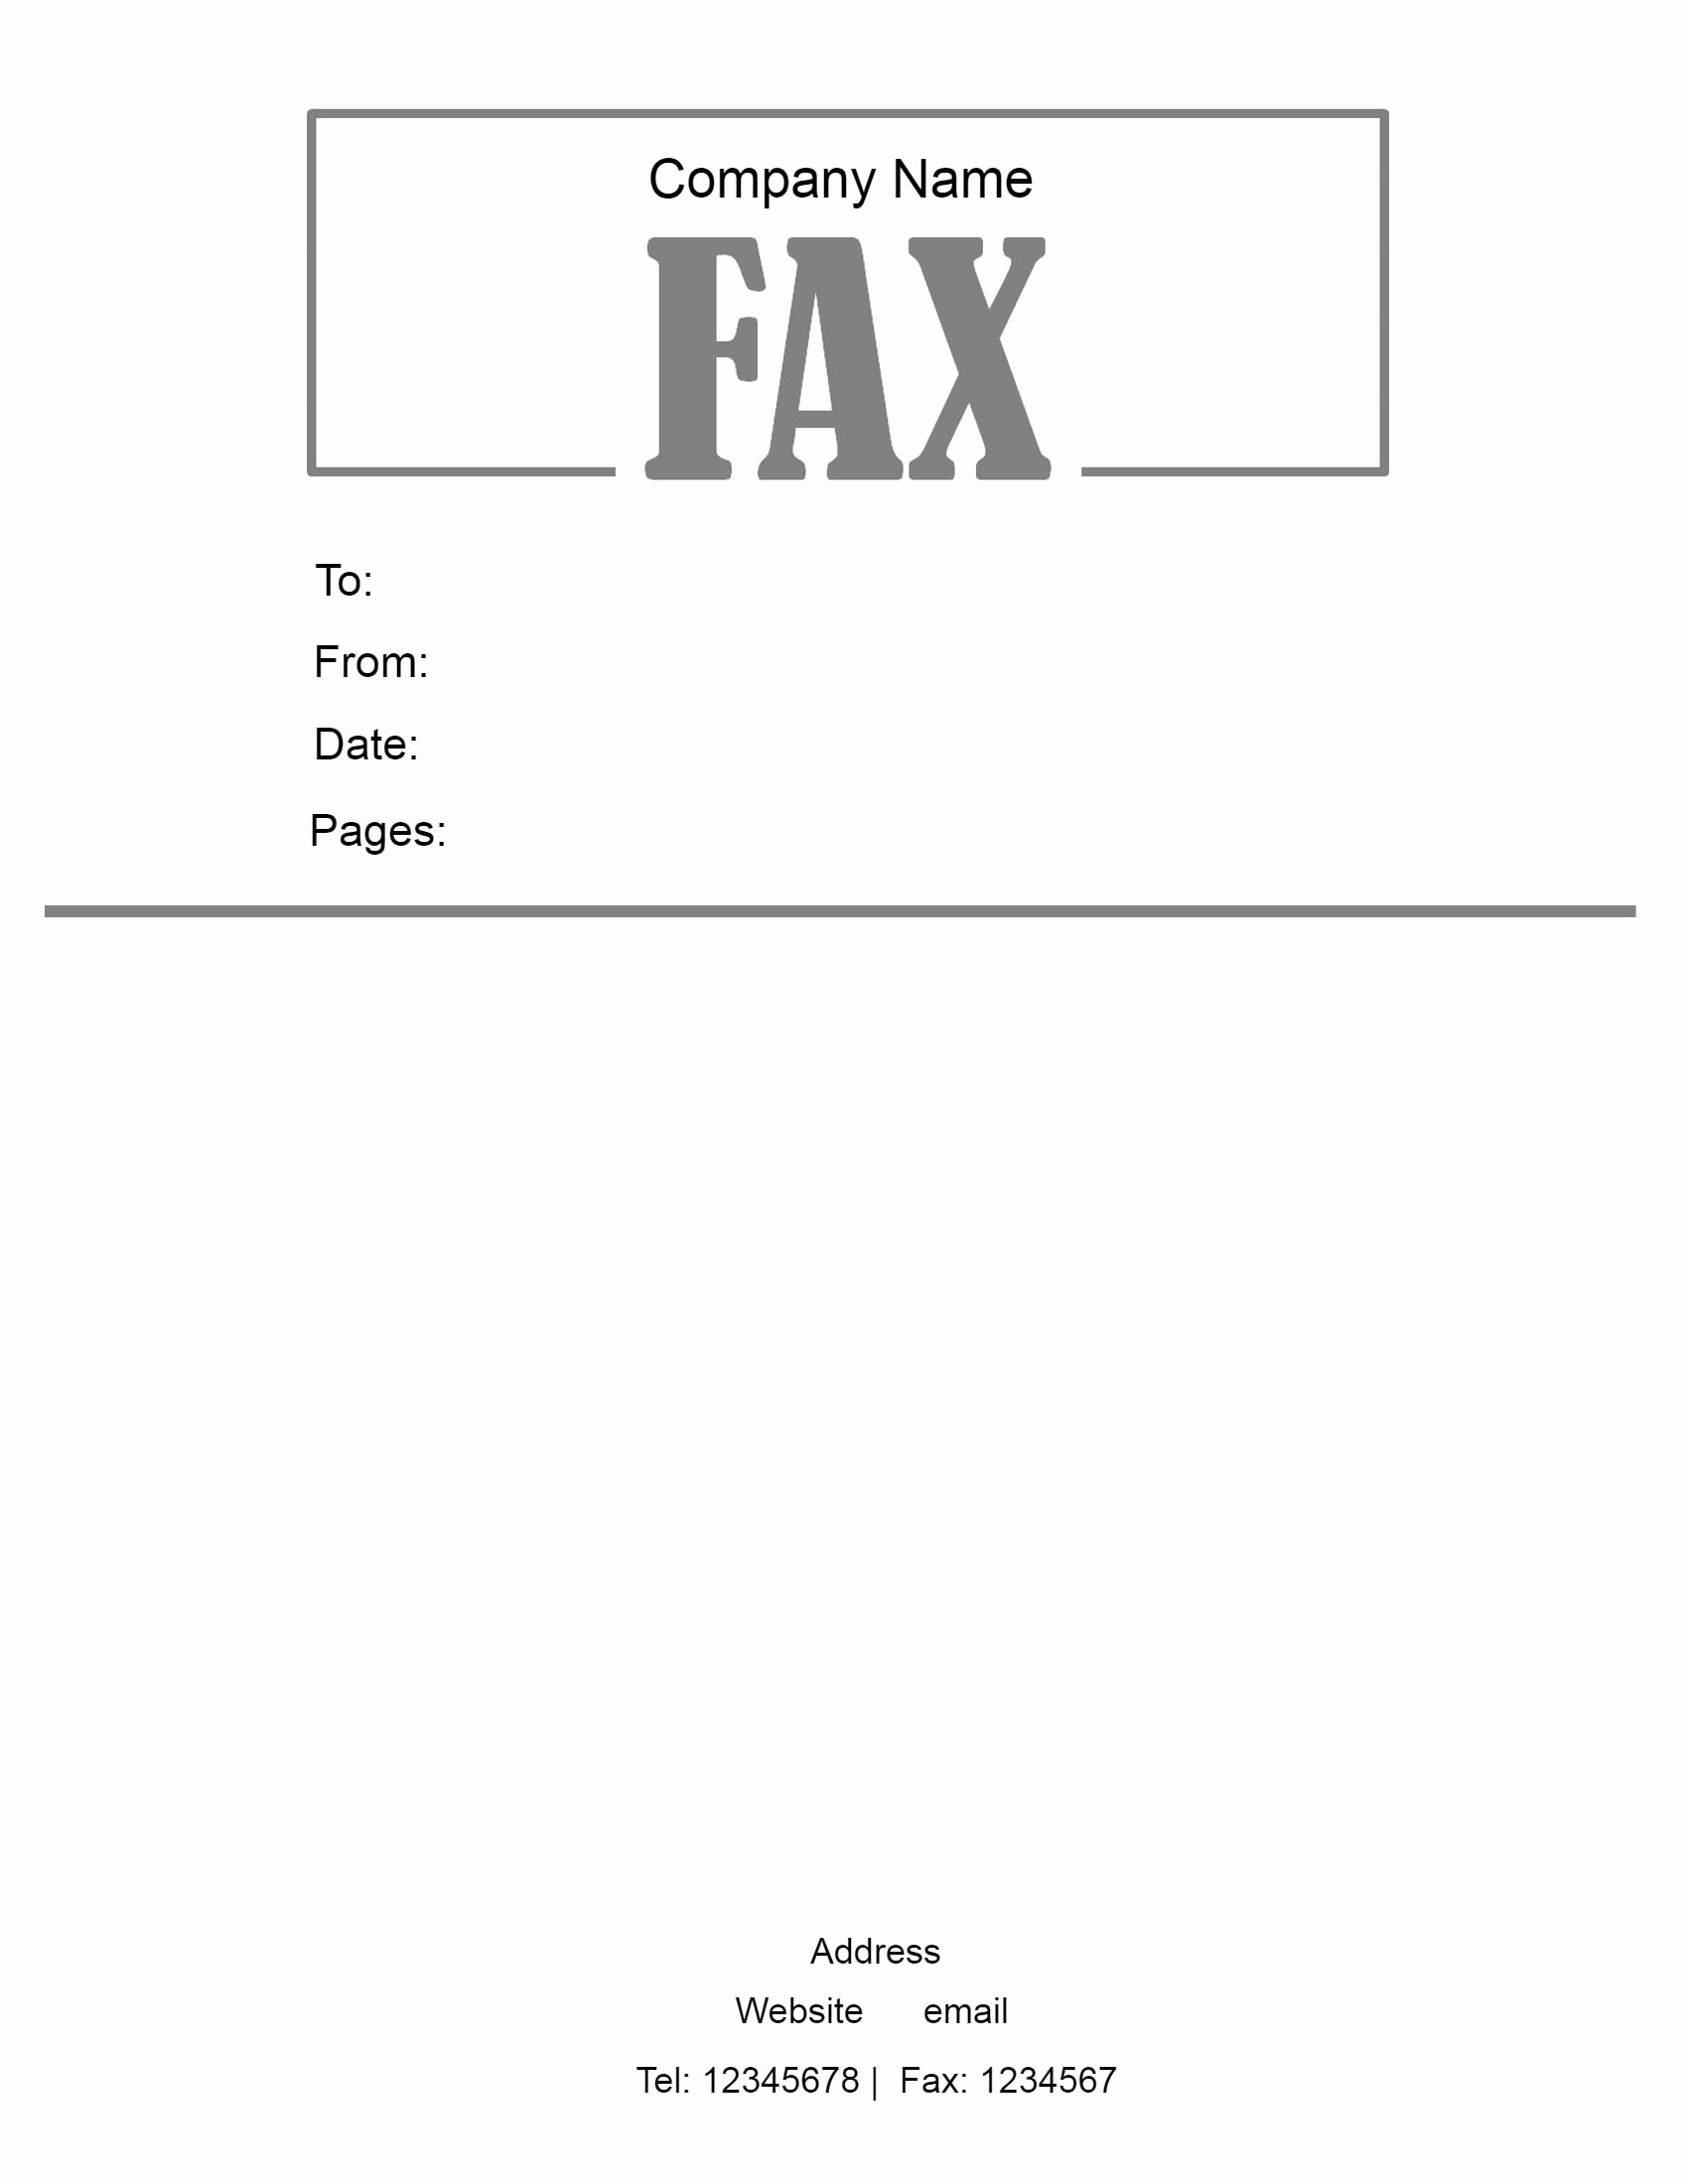 Fax Cover Page Luxury Free Fax Cover Sheet Template